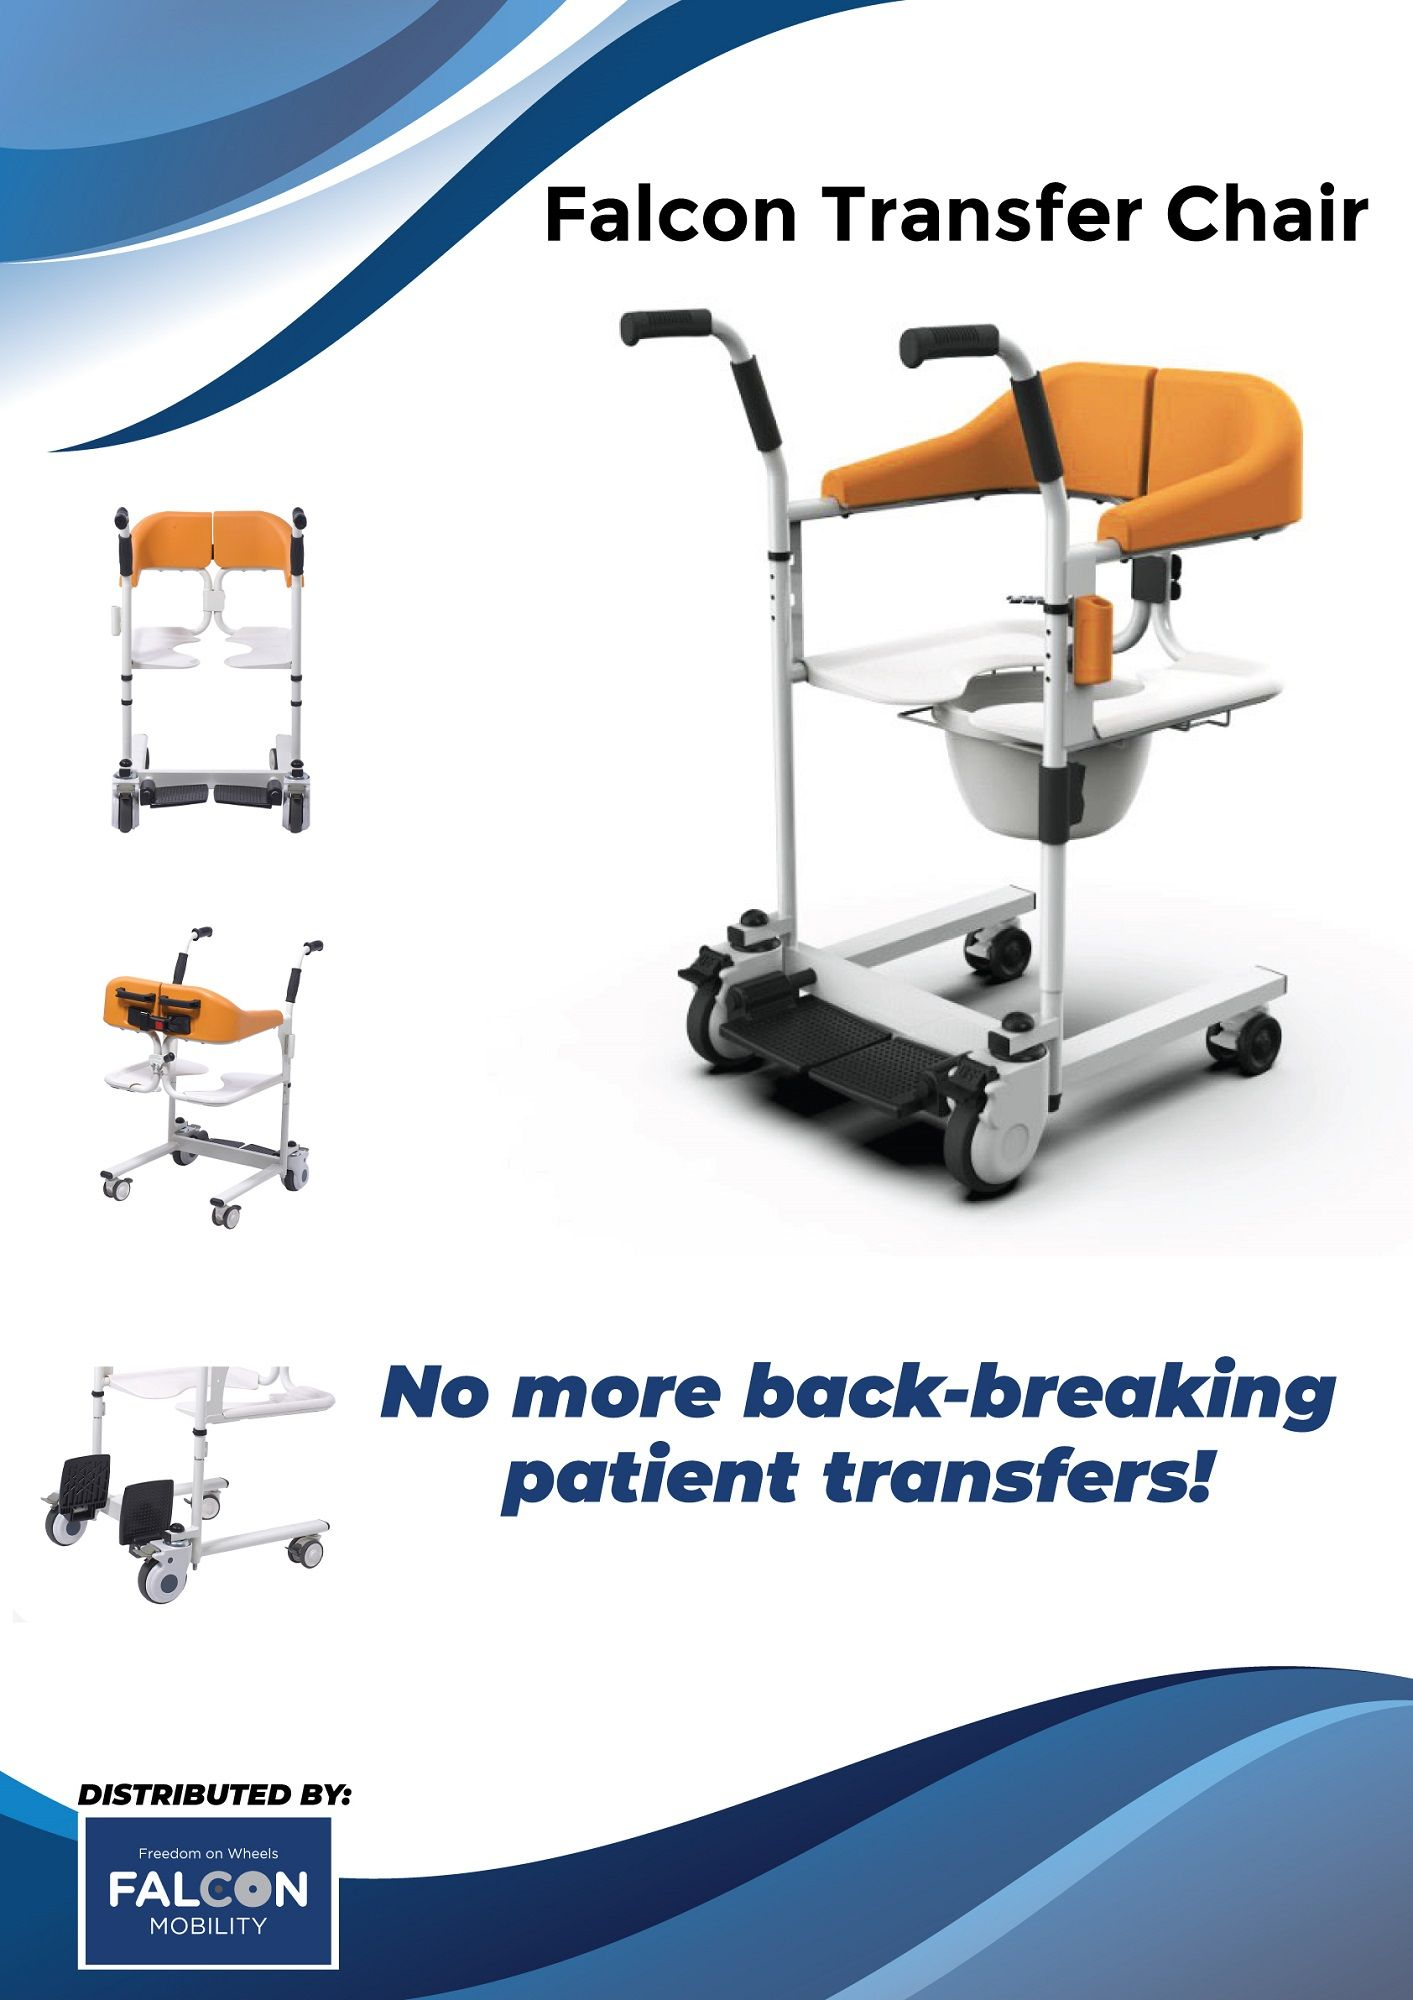 The Falcon Transfer Chair S Is Good If The Patient Is Too Heavy For The Caregiver To Transfer Between The Bed Ch In 2020 Wheelchair Innovation Design Mobility Scooter